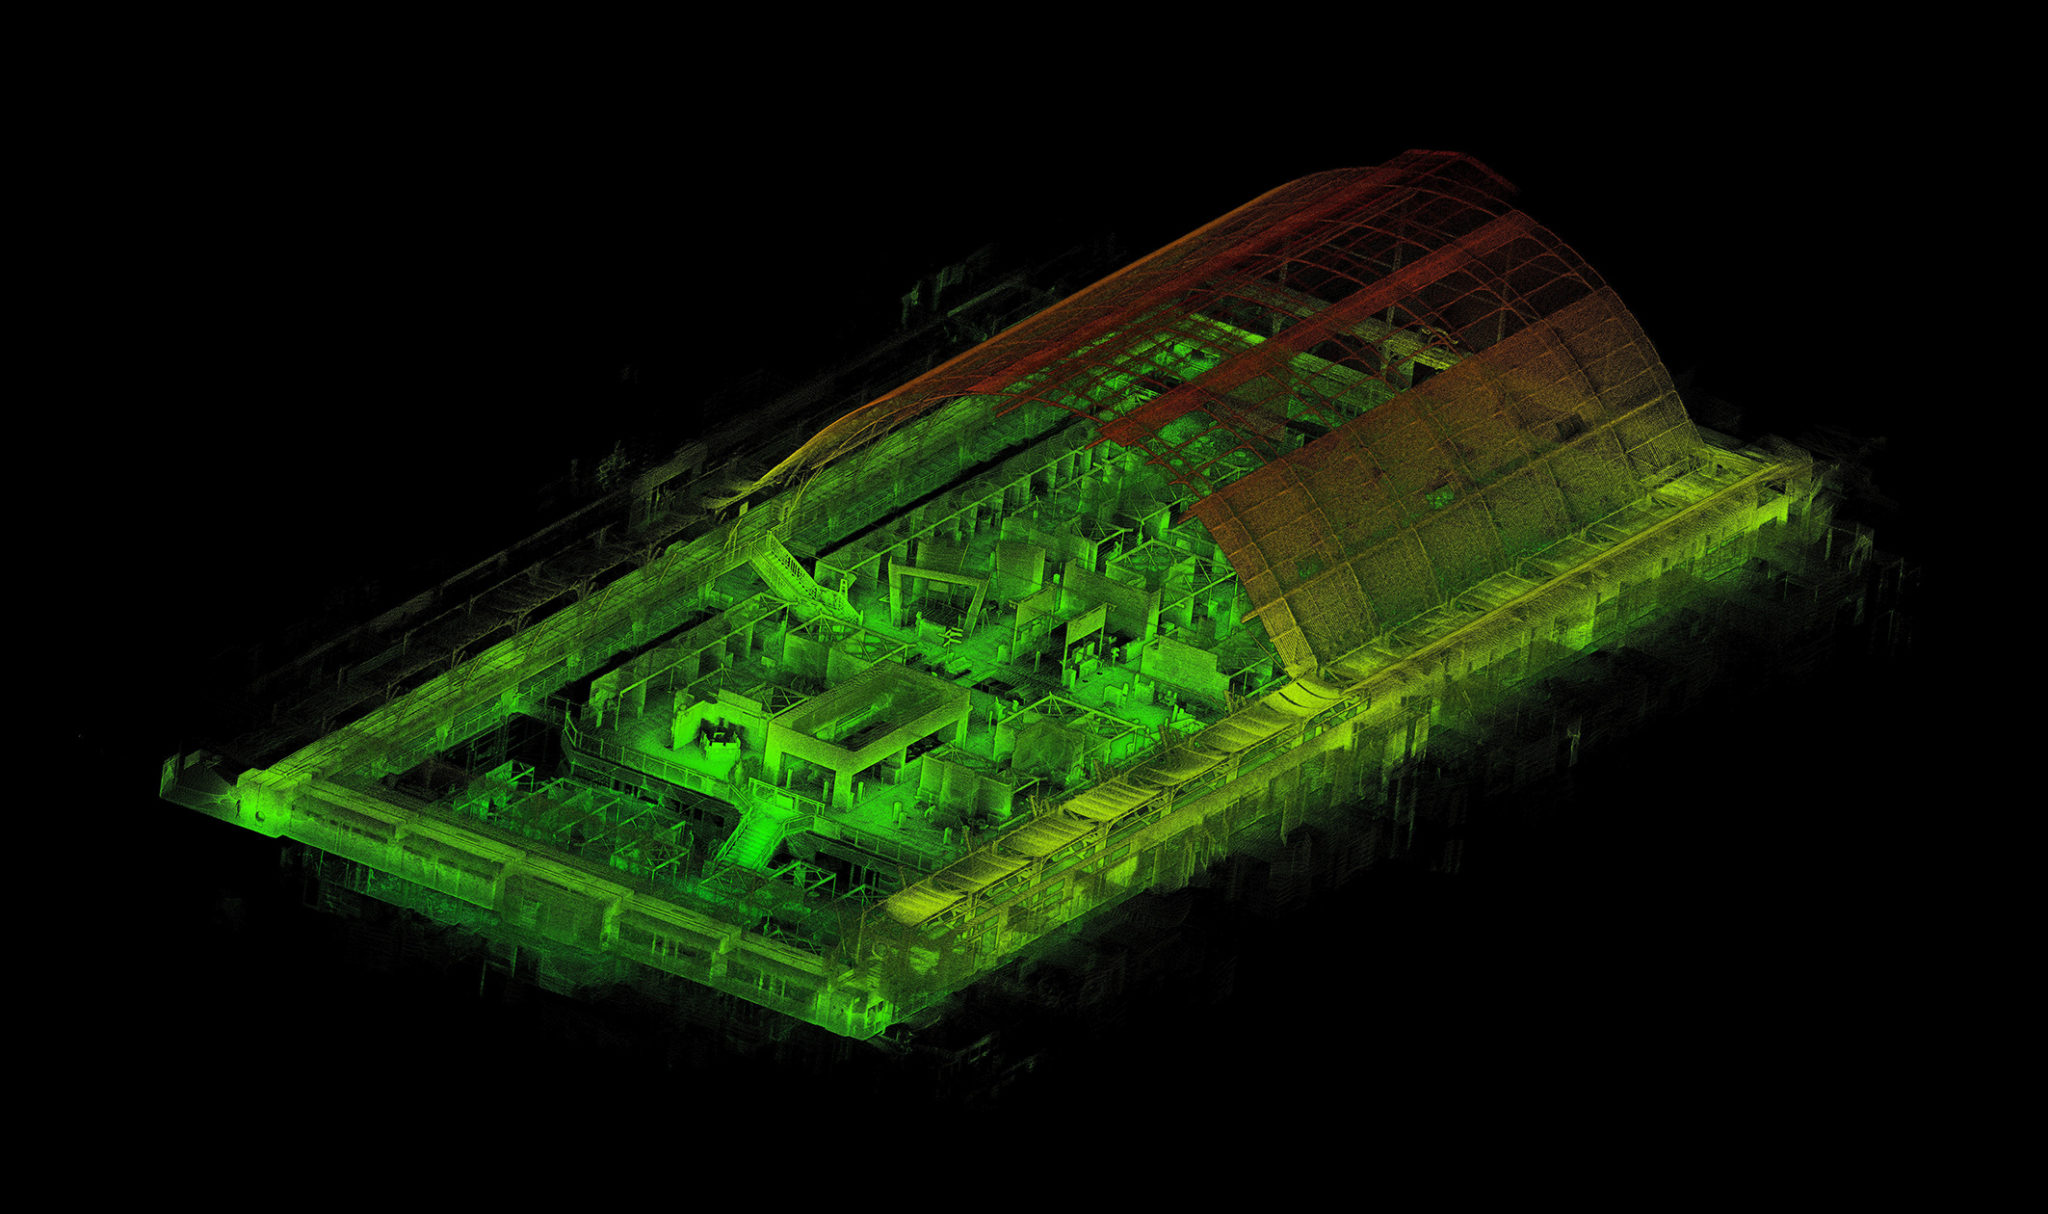 3D LASER MAPPING AND GEOSLAM GLOBAL MERGER ANNOUNCEMENT